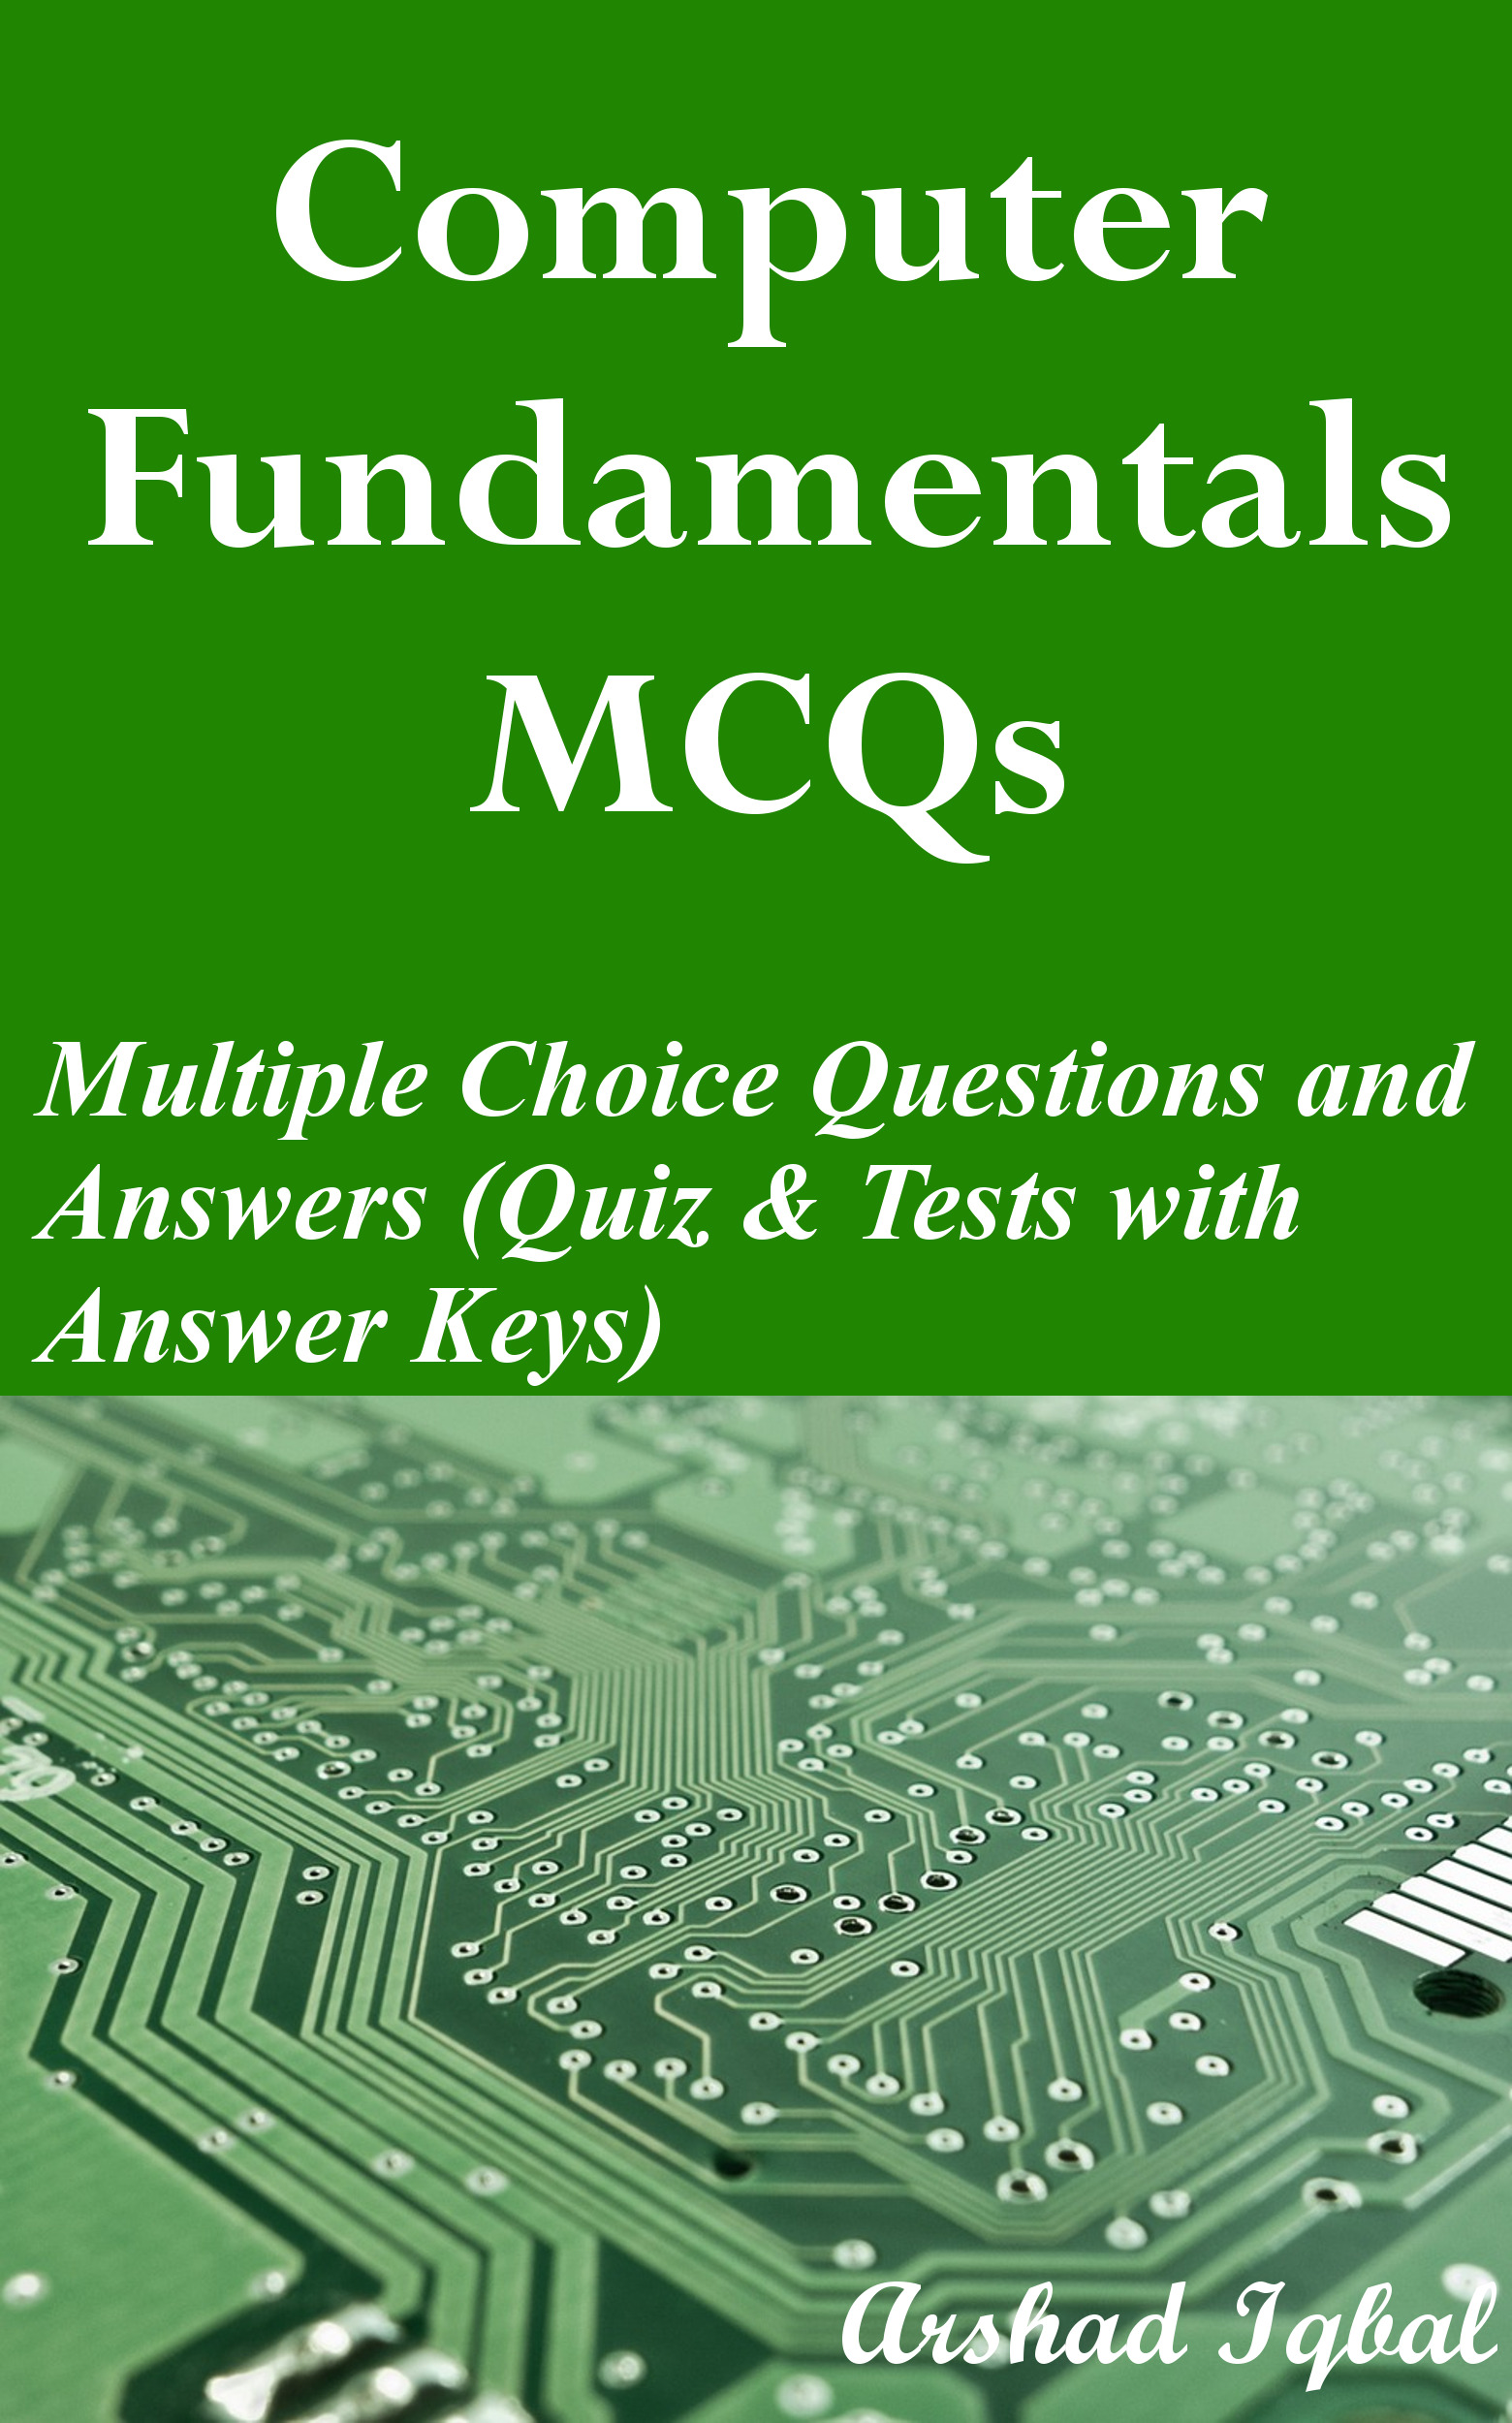 Computer Fundamentals MCQs: Multiple Choice Questions and Answers (Quiz & Tests with Answer Keys)